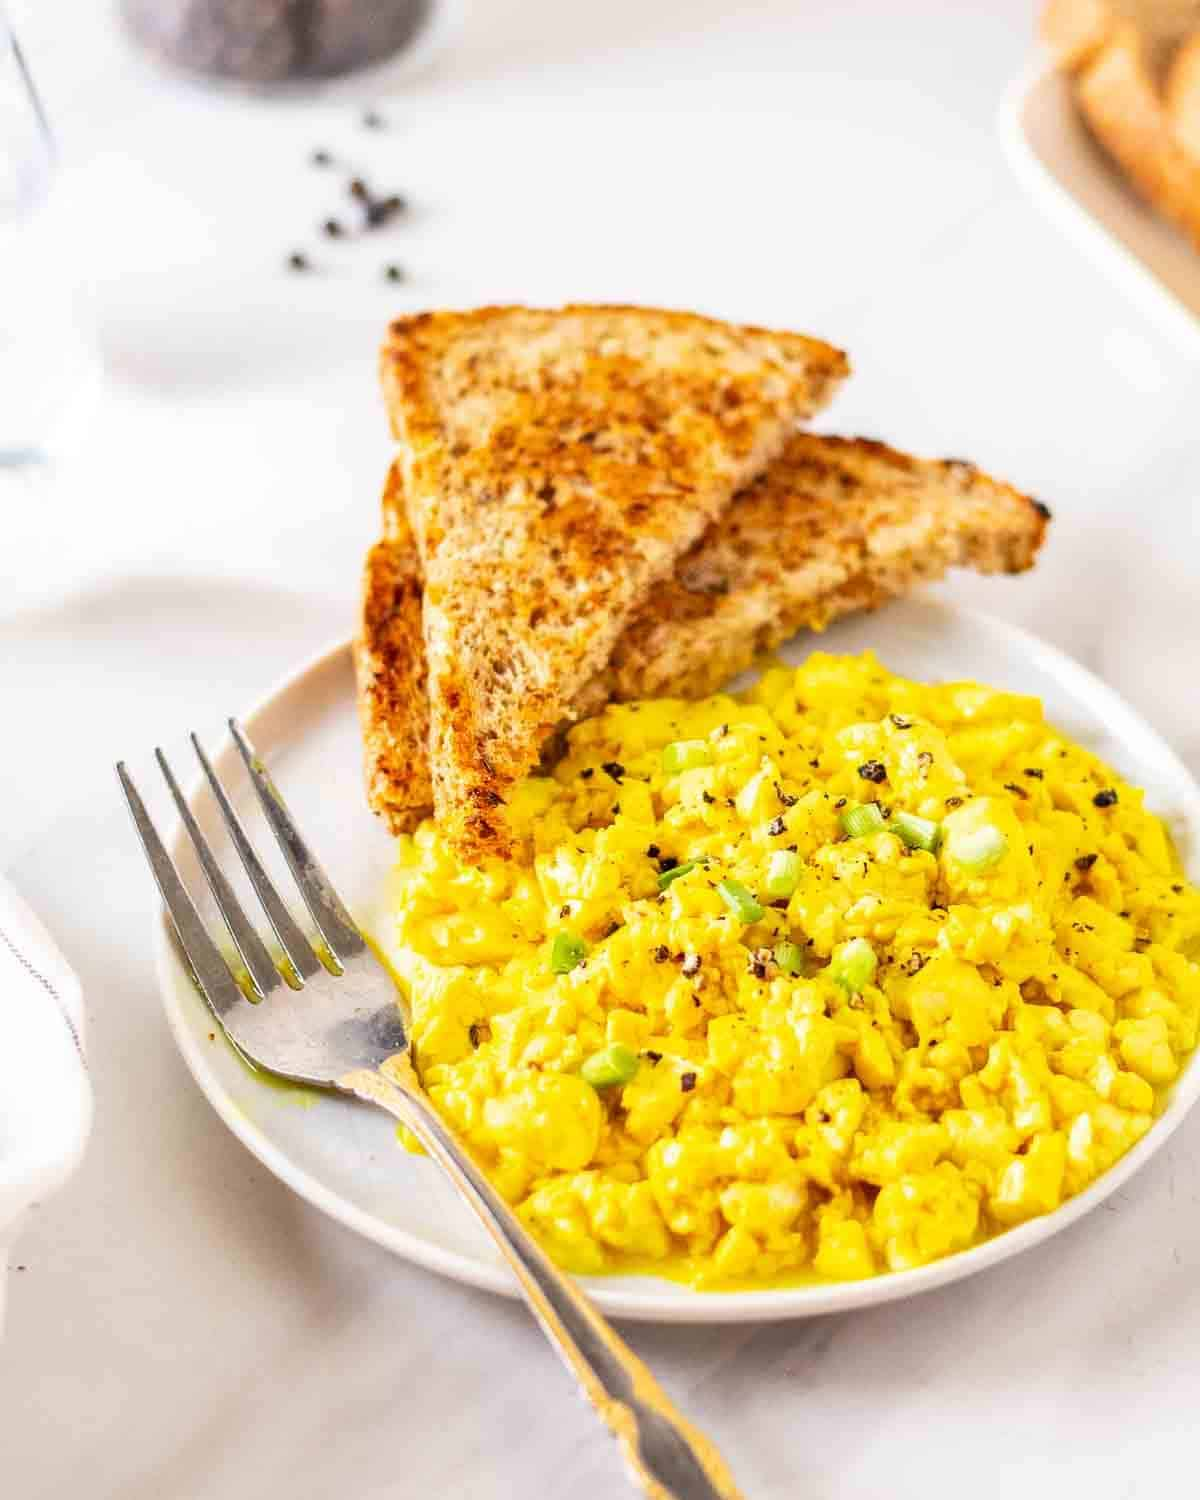 Tofu scramble served with toast on a plate with a fork.